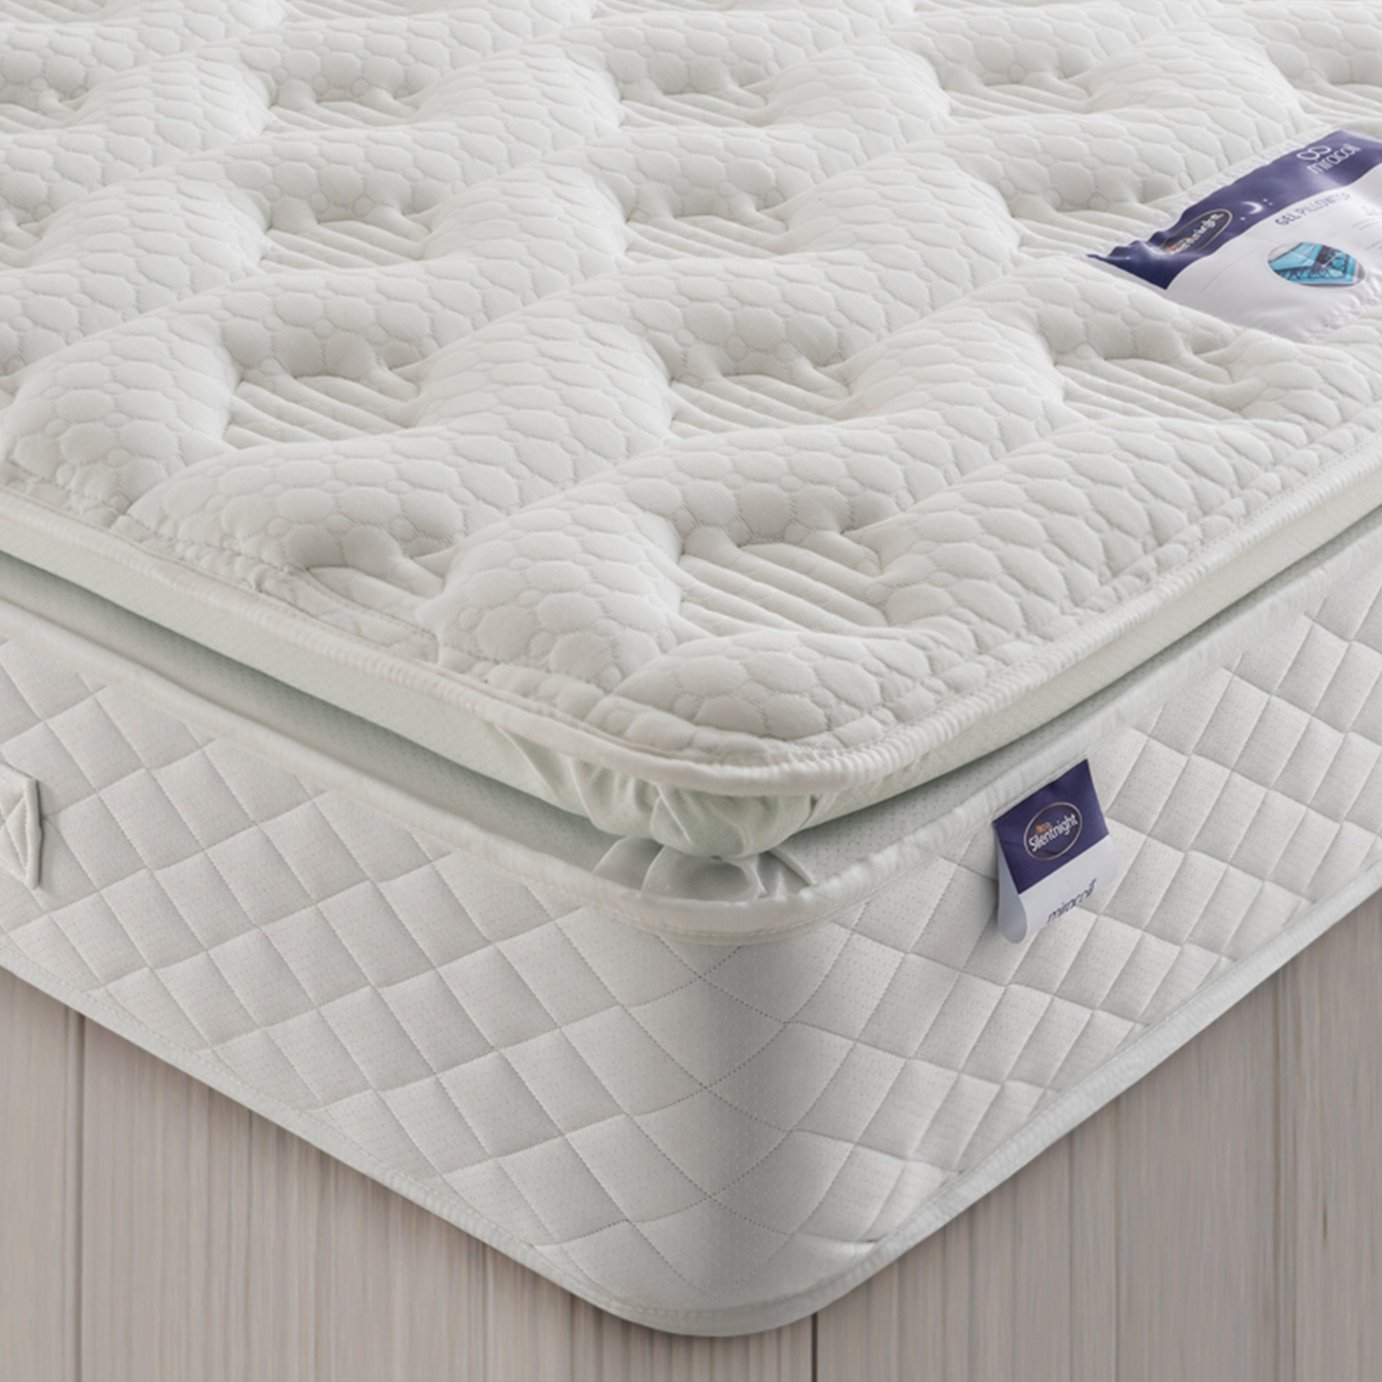 Silentnights exclusive Geltex Comfort Pillowtop mattress offers a great nights sleep with amazing comfort and breathability. The 4cm gel infused layer offers ultim...